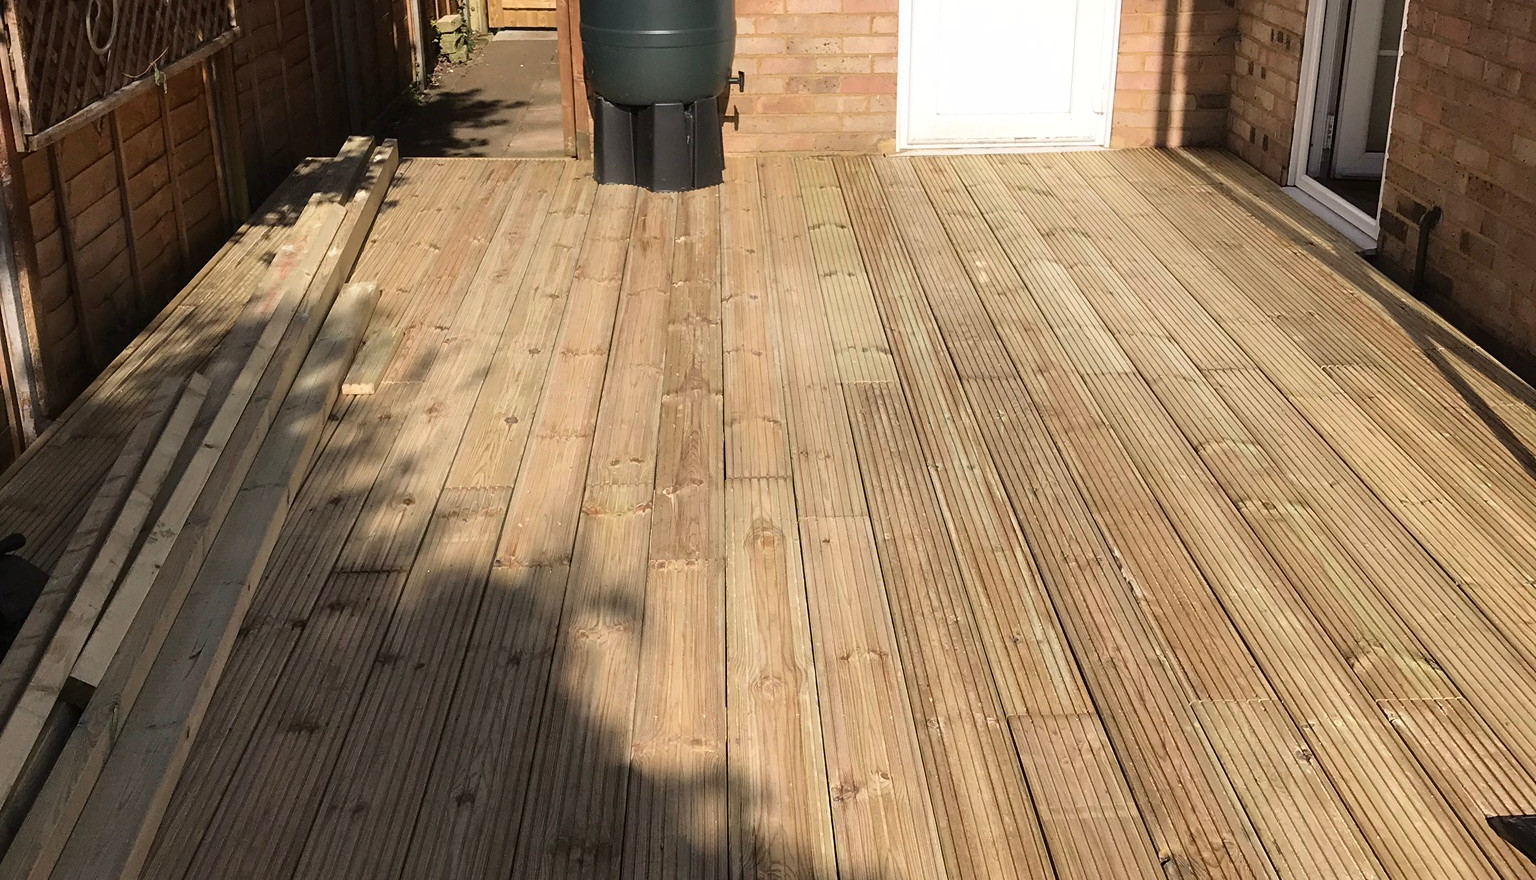 New deck boards down and sweeping up